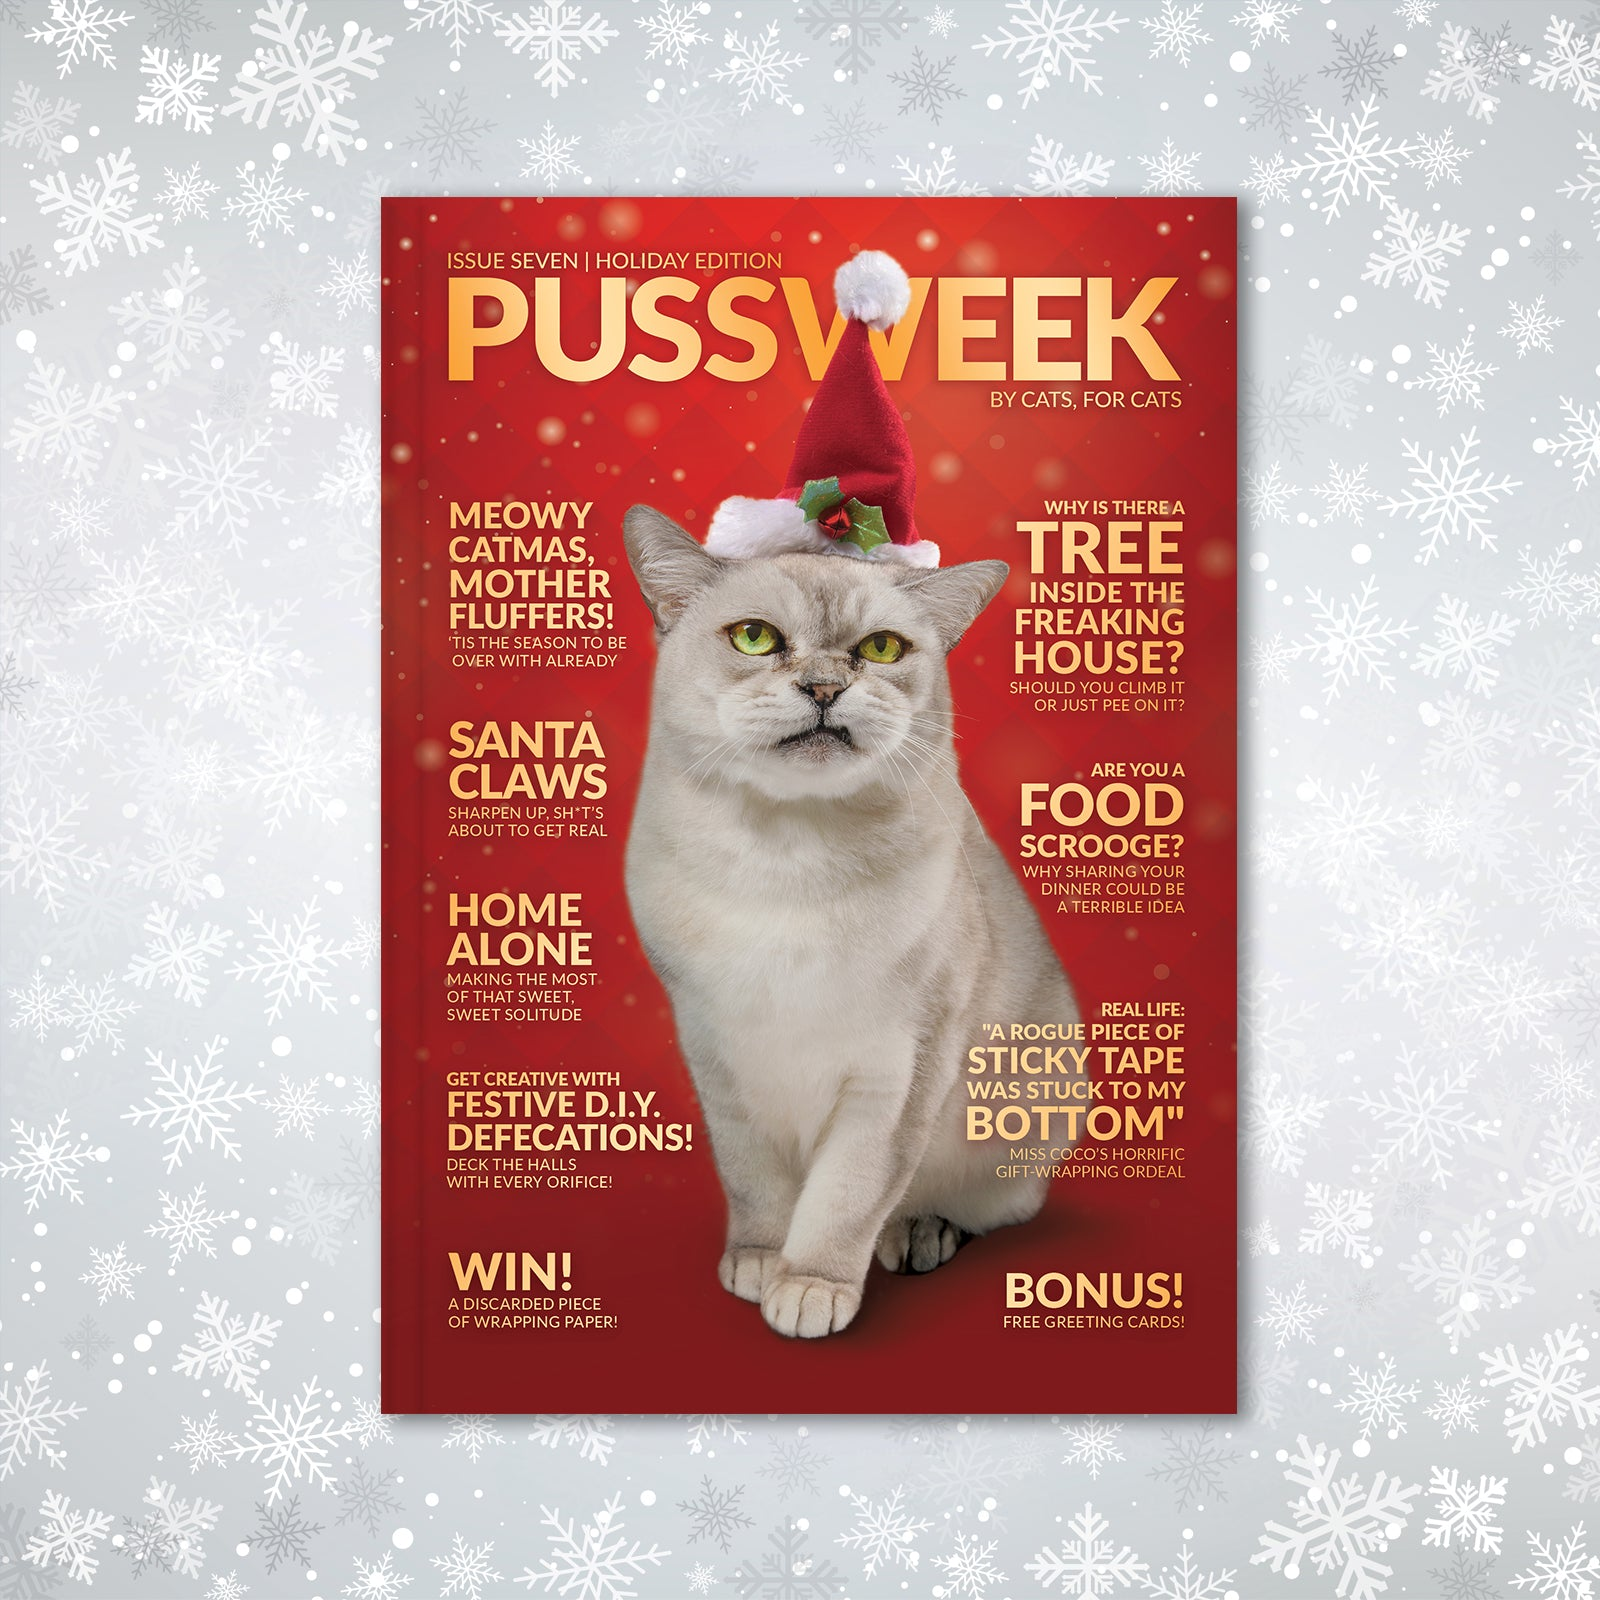 PUSSWEEK Issue Seven | The Holiday Edition